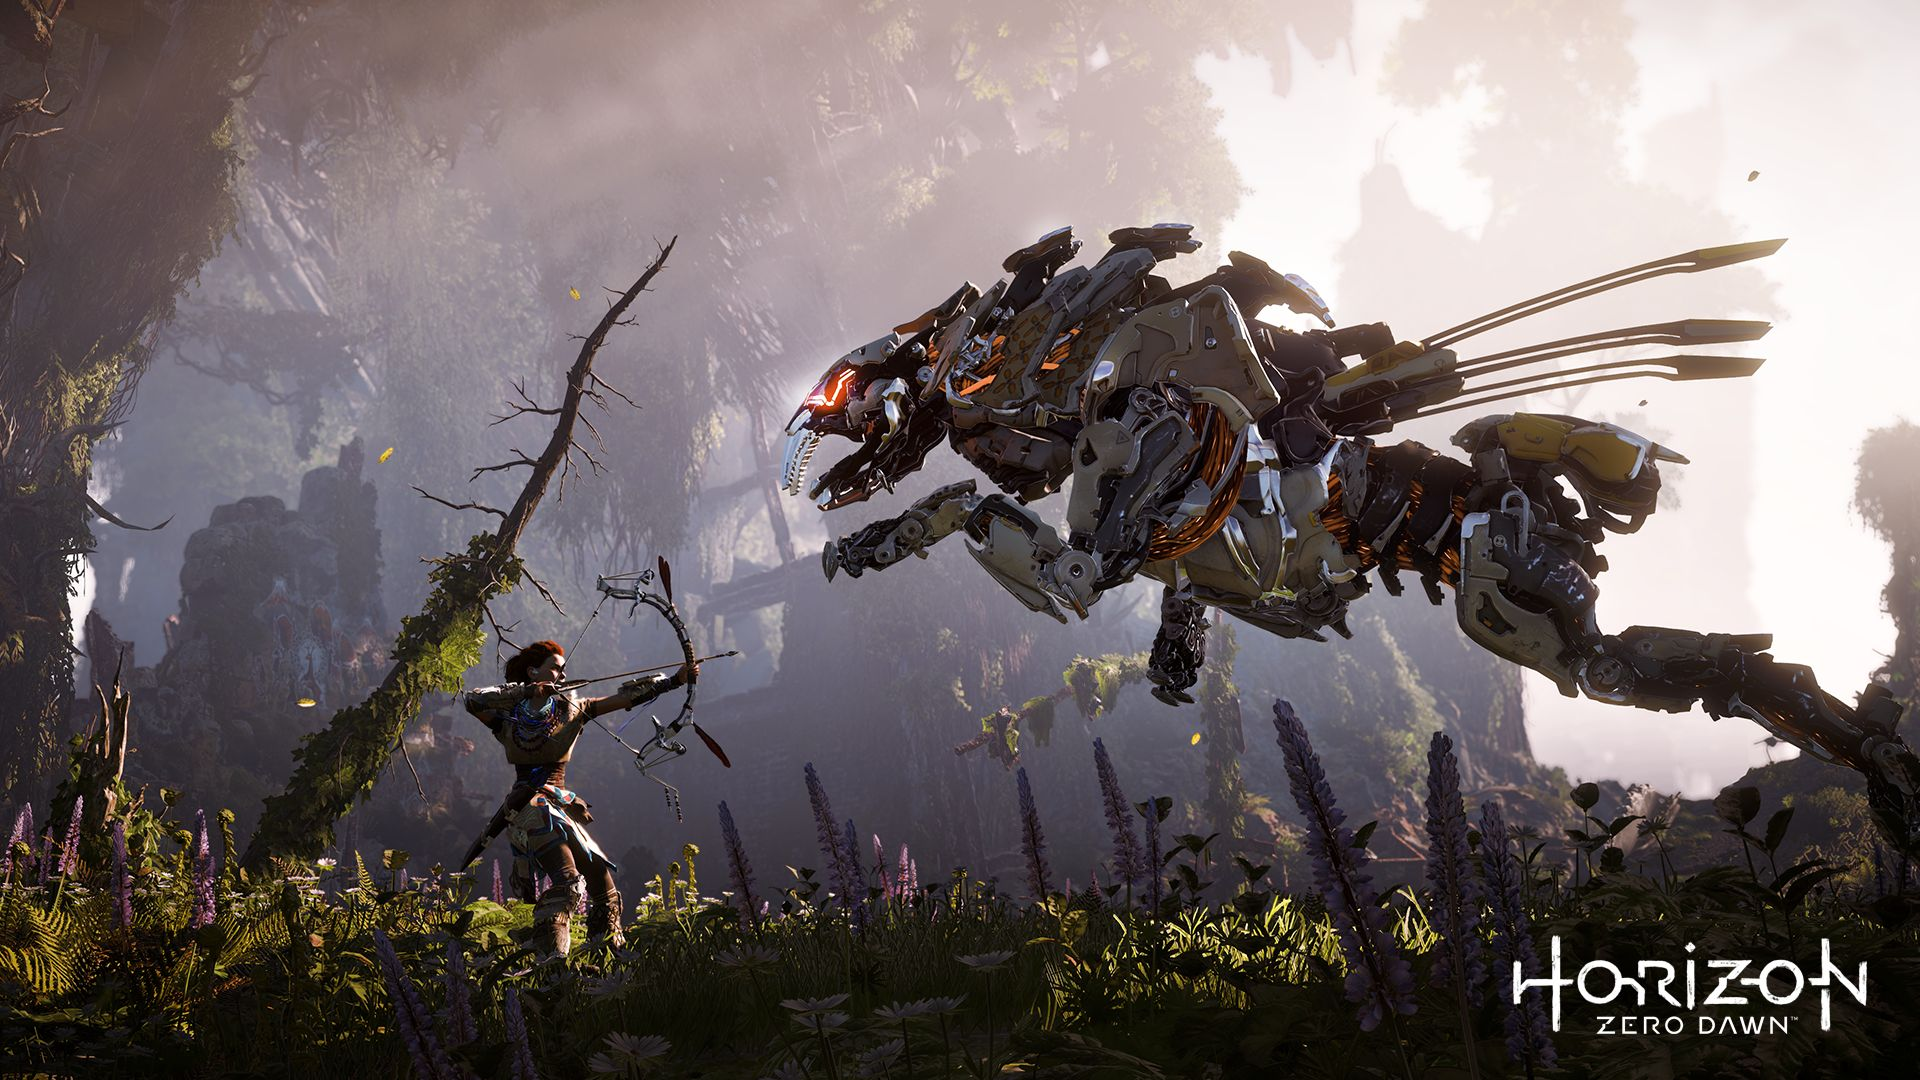 Horizon zero dawn patch 1.13